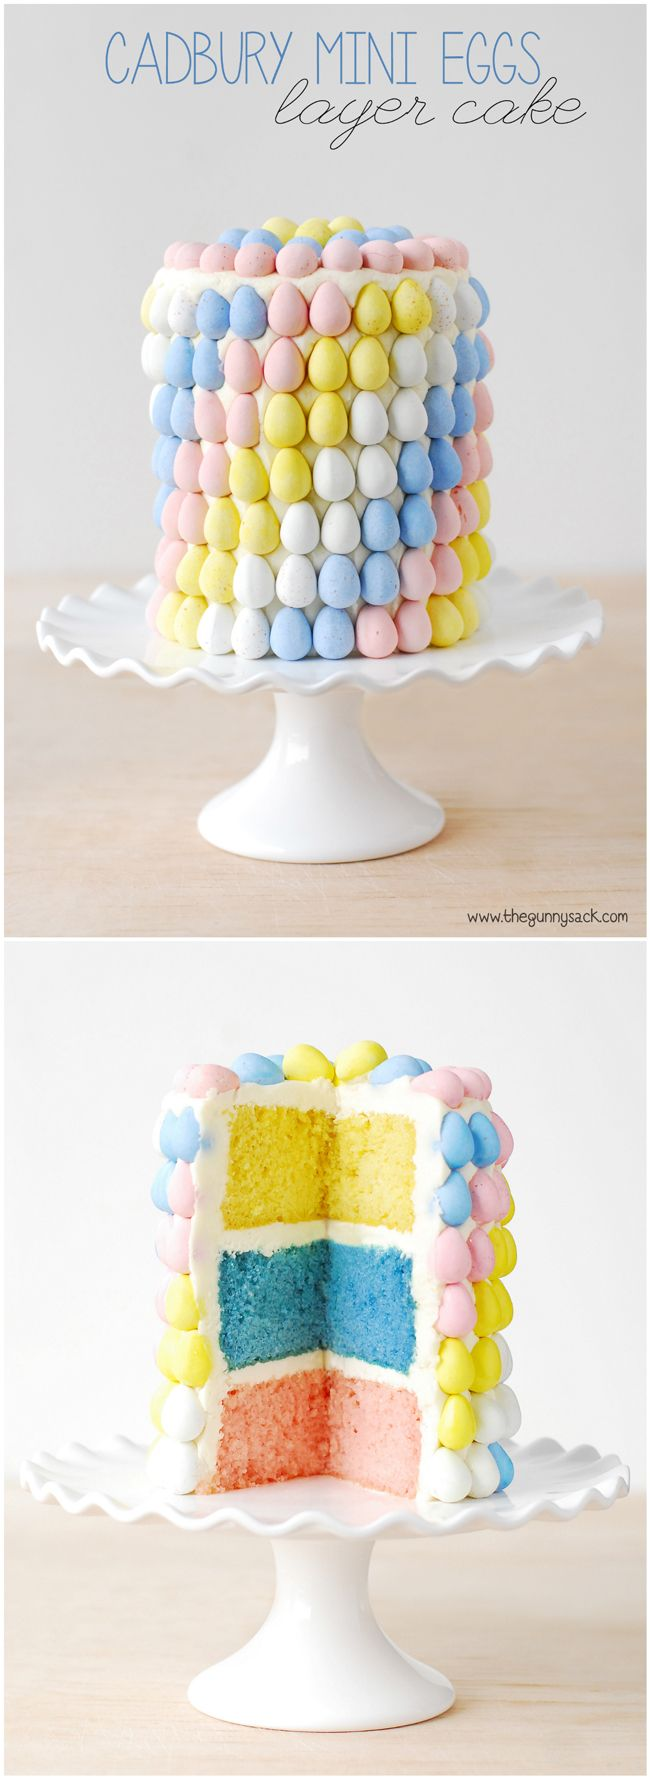 Make a beautiful layer cake for spring and decorate it with Cadbury Mini Eggs. Love my mini eggs! ;)